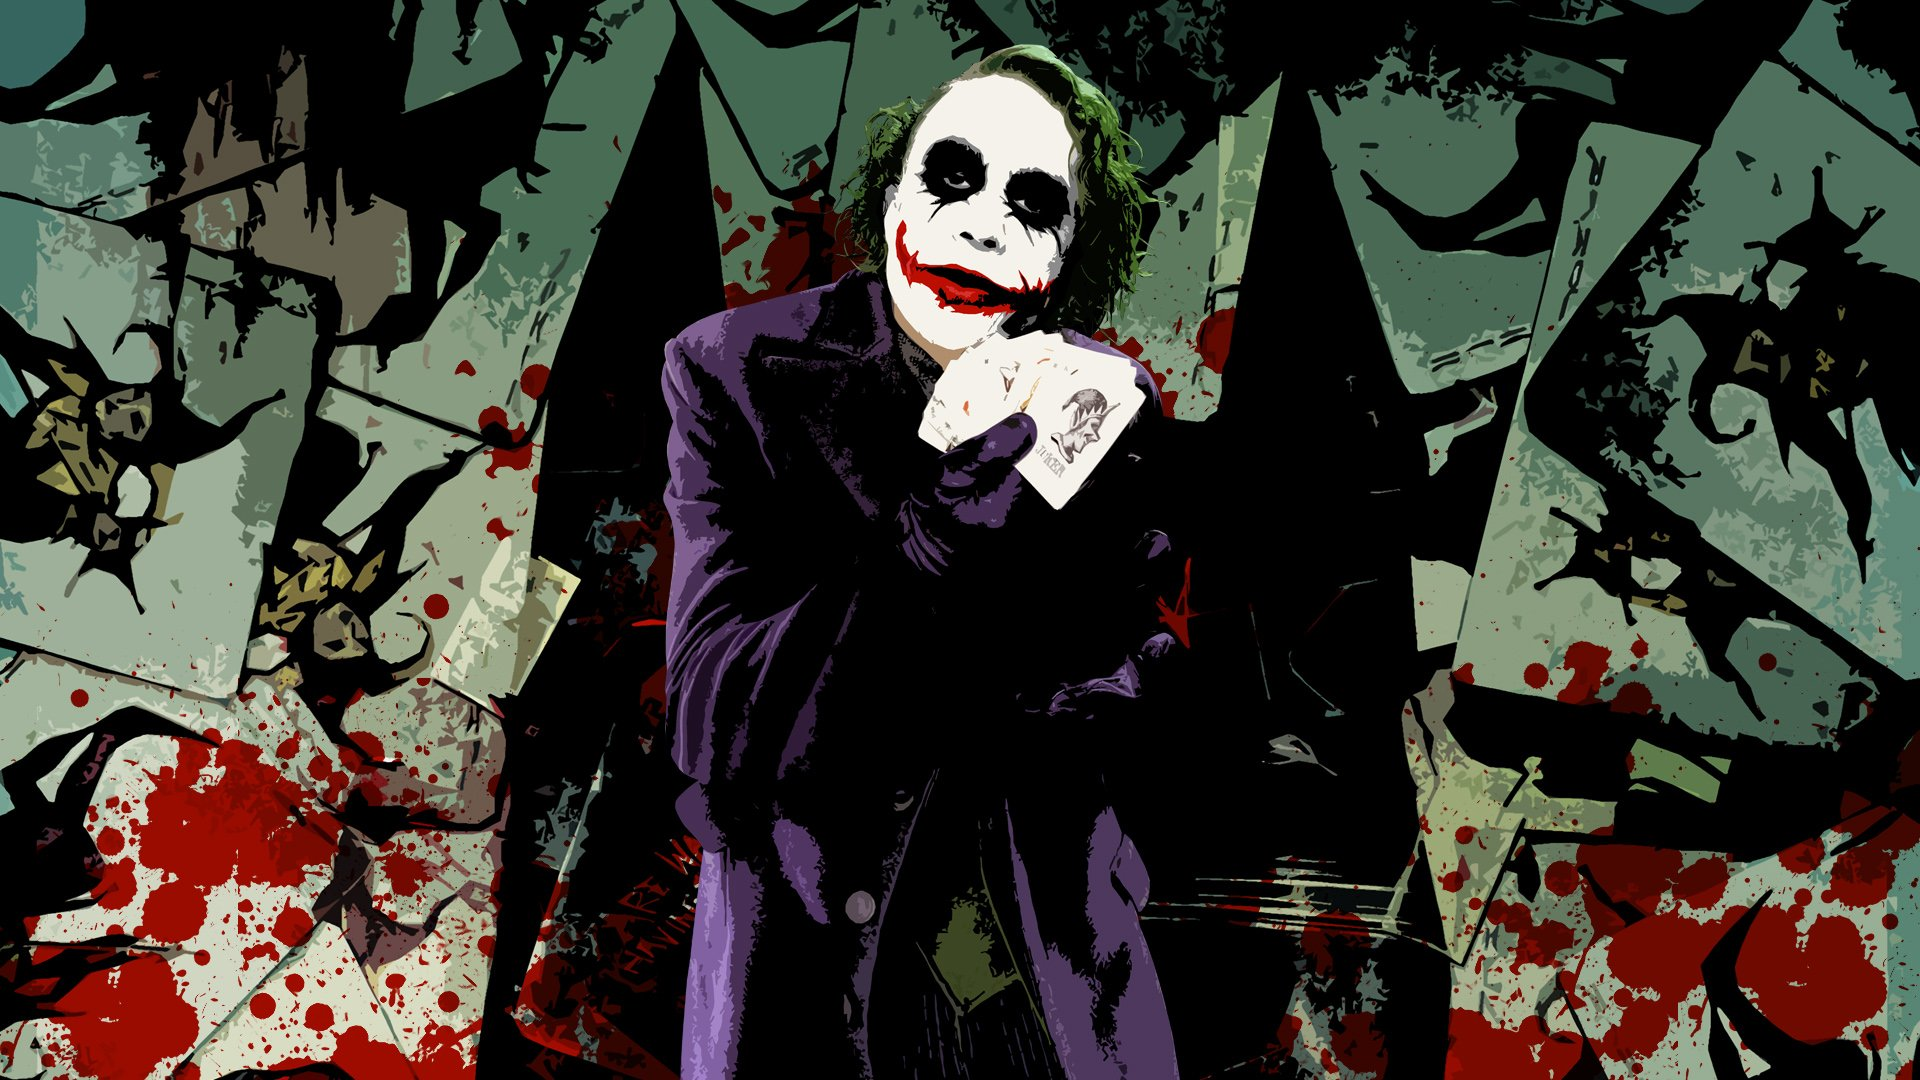 Joker Wallpaper Hd 207400 1920x1080